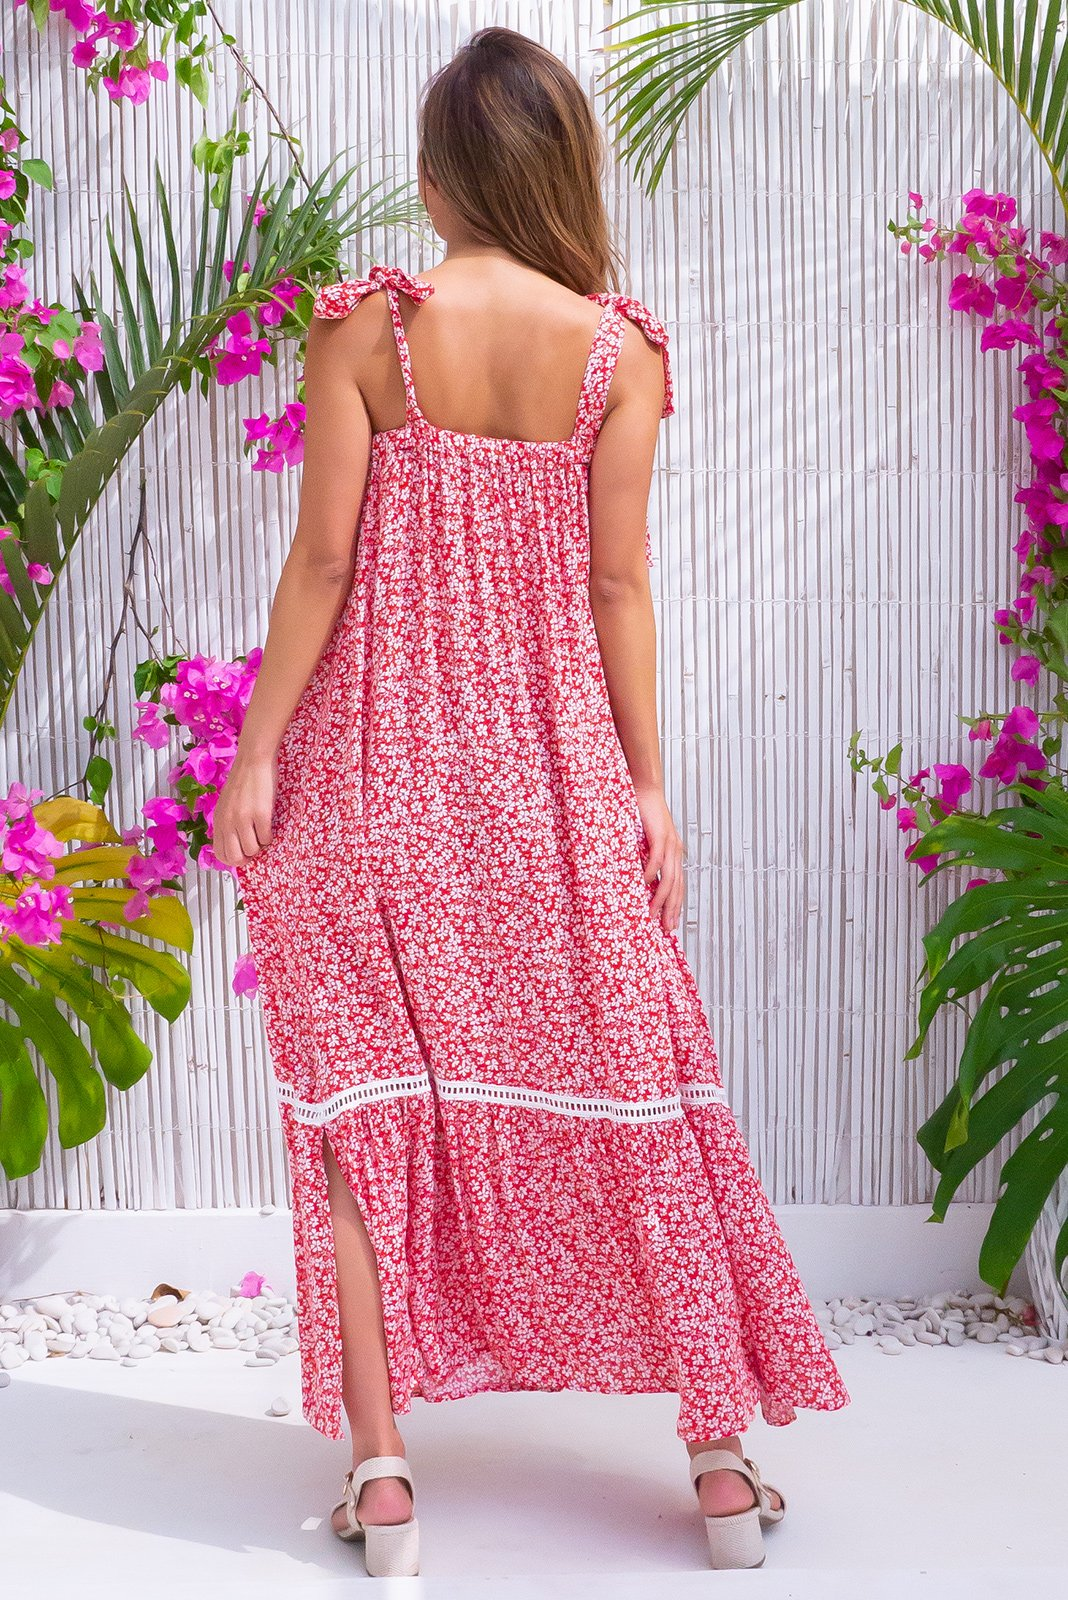 The Moon Kiss Red Daisy Maxi Dress is a fun and vintage inspired frock featuring adjustable tie up straps, lace detail around top, side pockets, lace insert above frill hem feature, small split detail on both sides of hem in bright red base with white daisy print in woven 100% crinkle texture viscose.